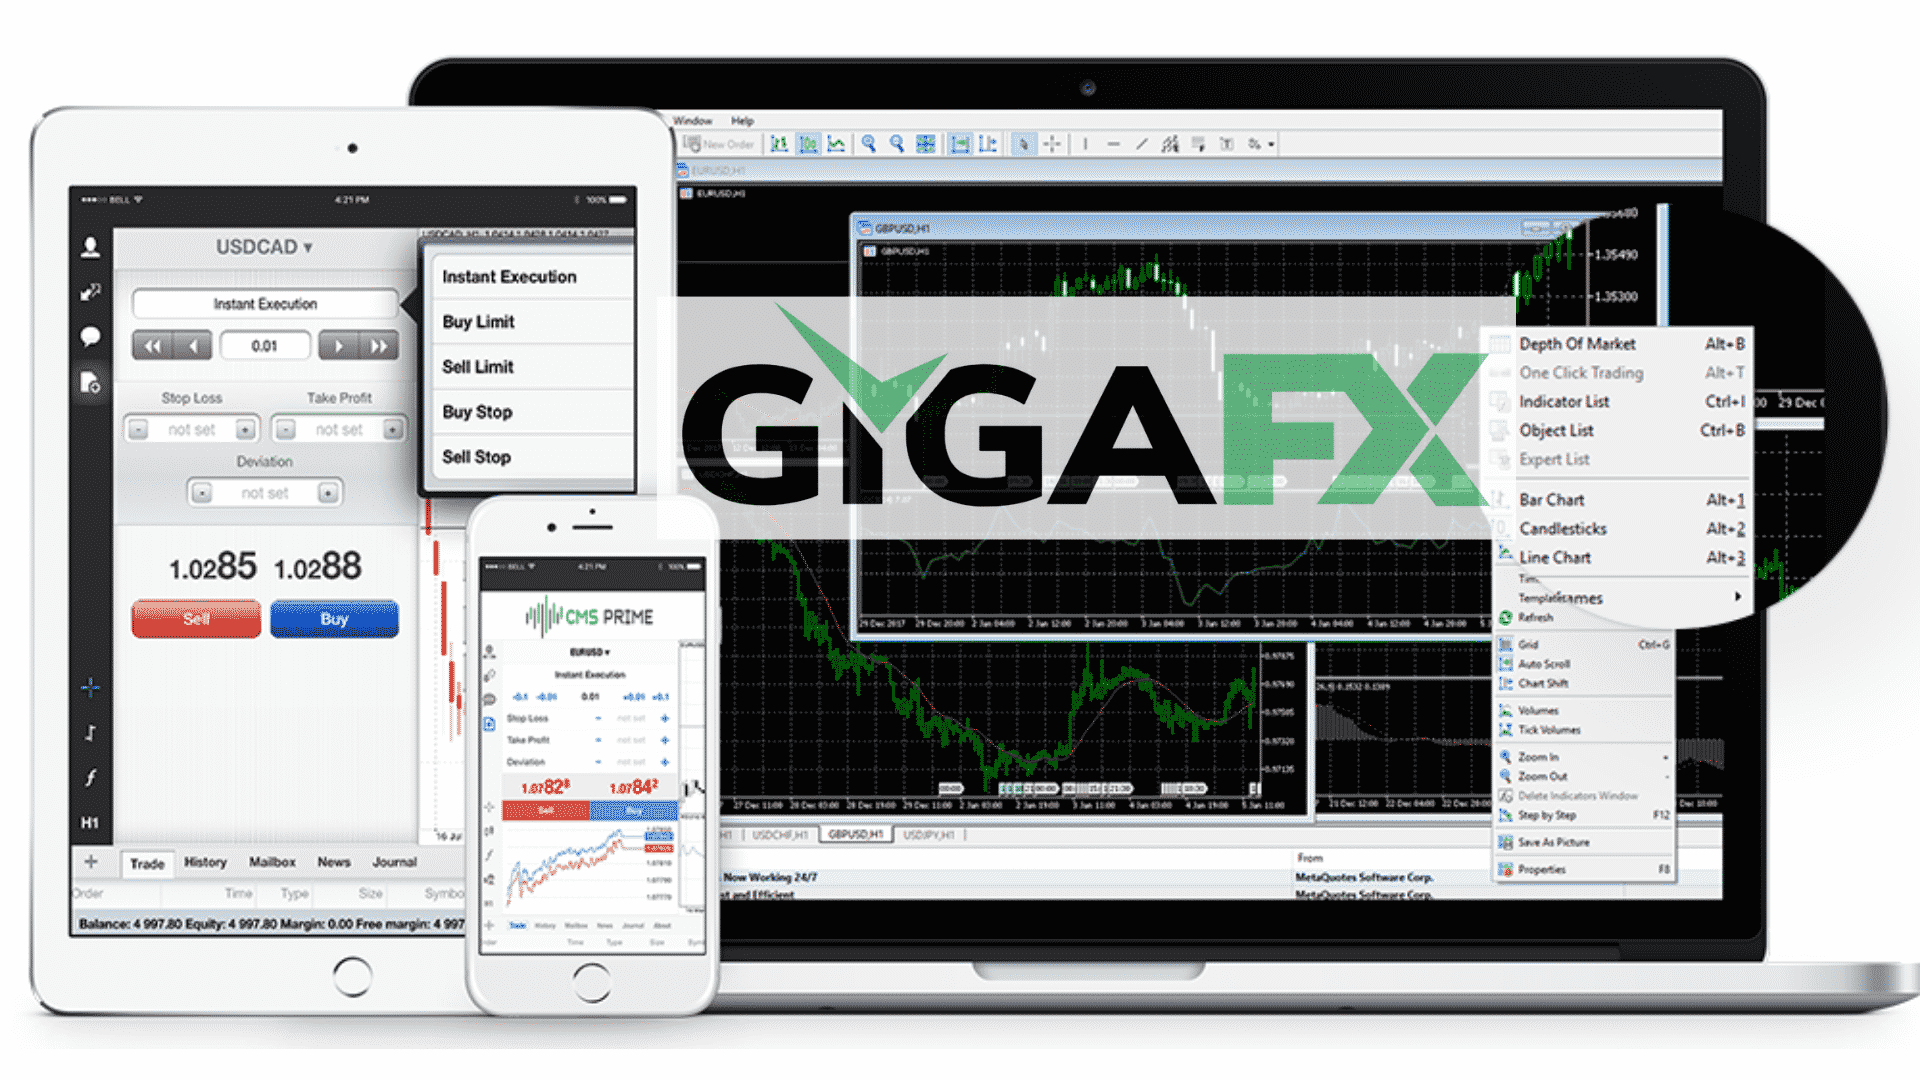 GigaFX- a Perfect Trading Platform with Advanced Tools